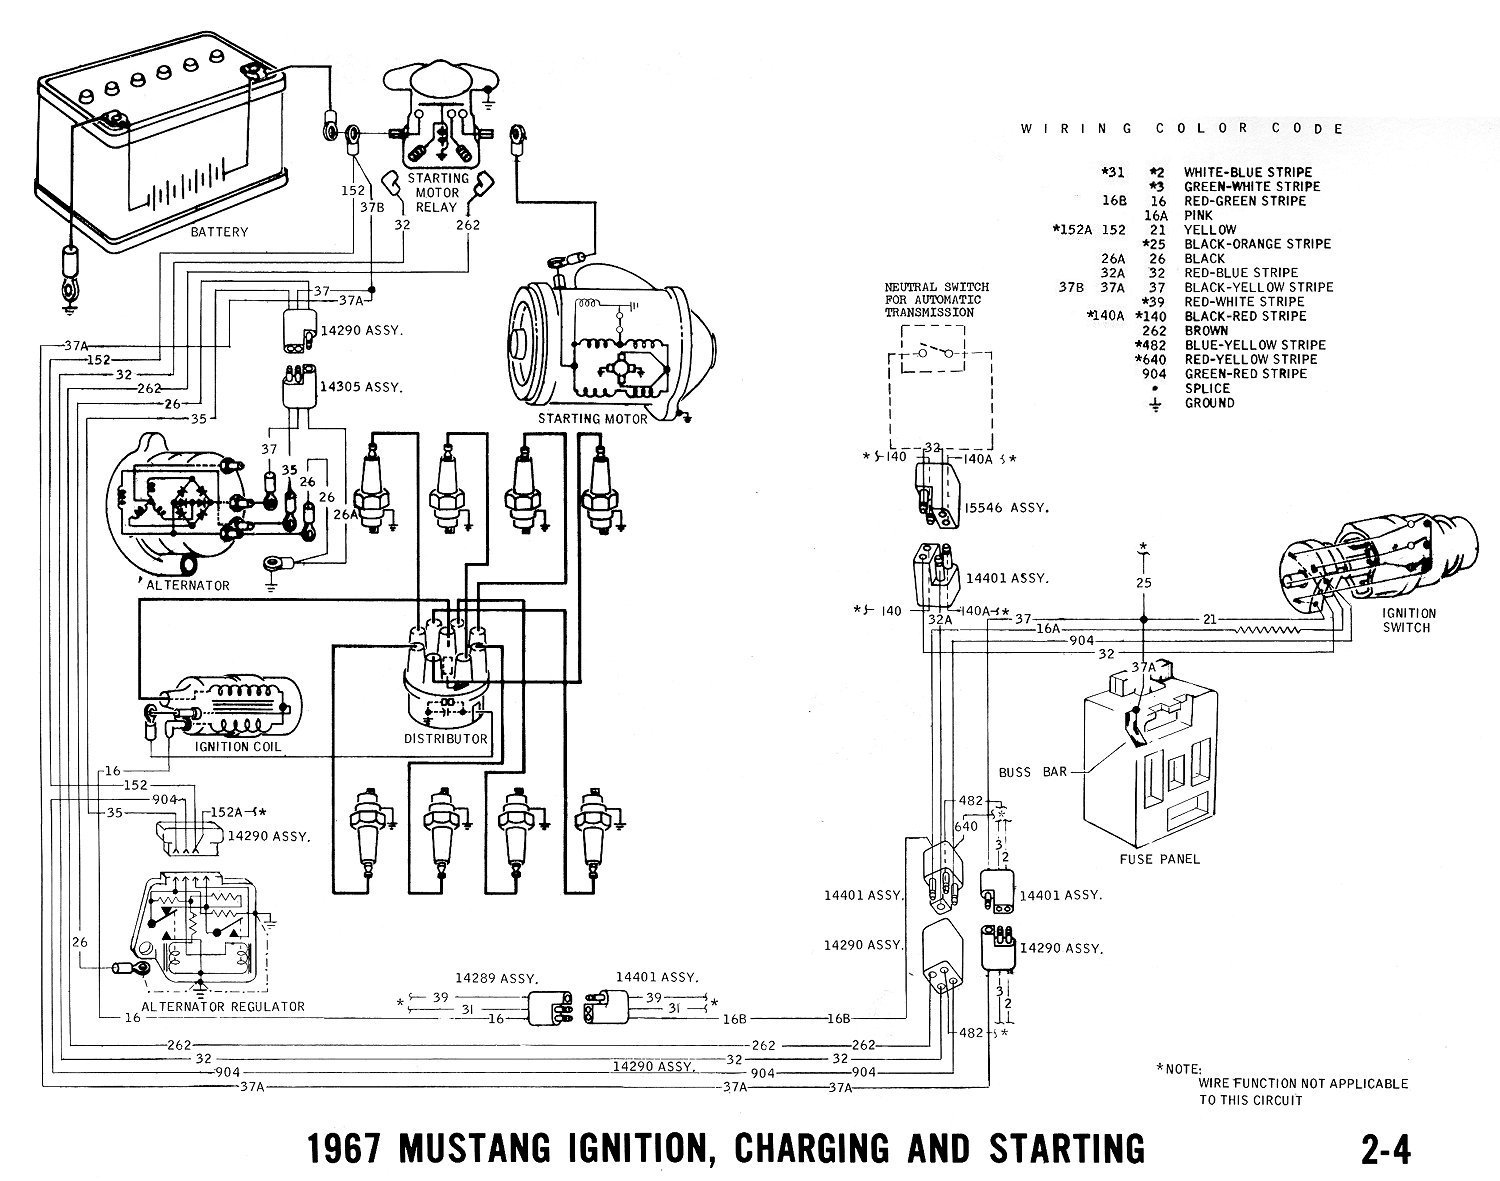 1969 mach 1 wiring diagram wiring diagram 1970 mach 1 fuse box wiring diagrams instructions rh ww2 ww w freeautoresponder co 1969 camaro wiring diagram 1969 mustang mach 1 wiring diagram asfbconference2016 Image collections